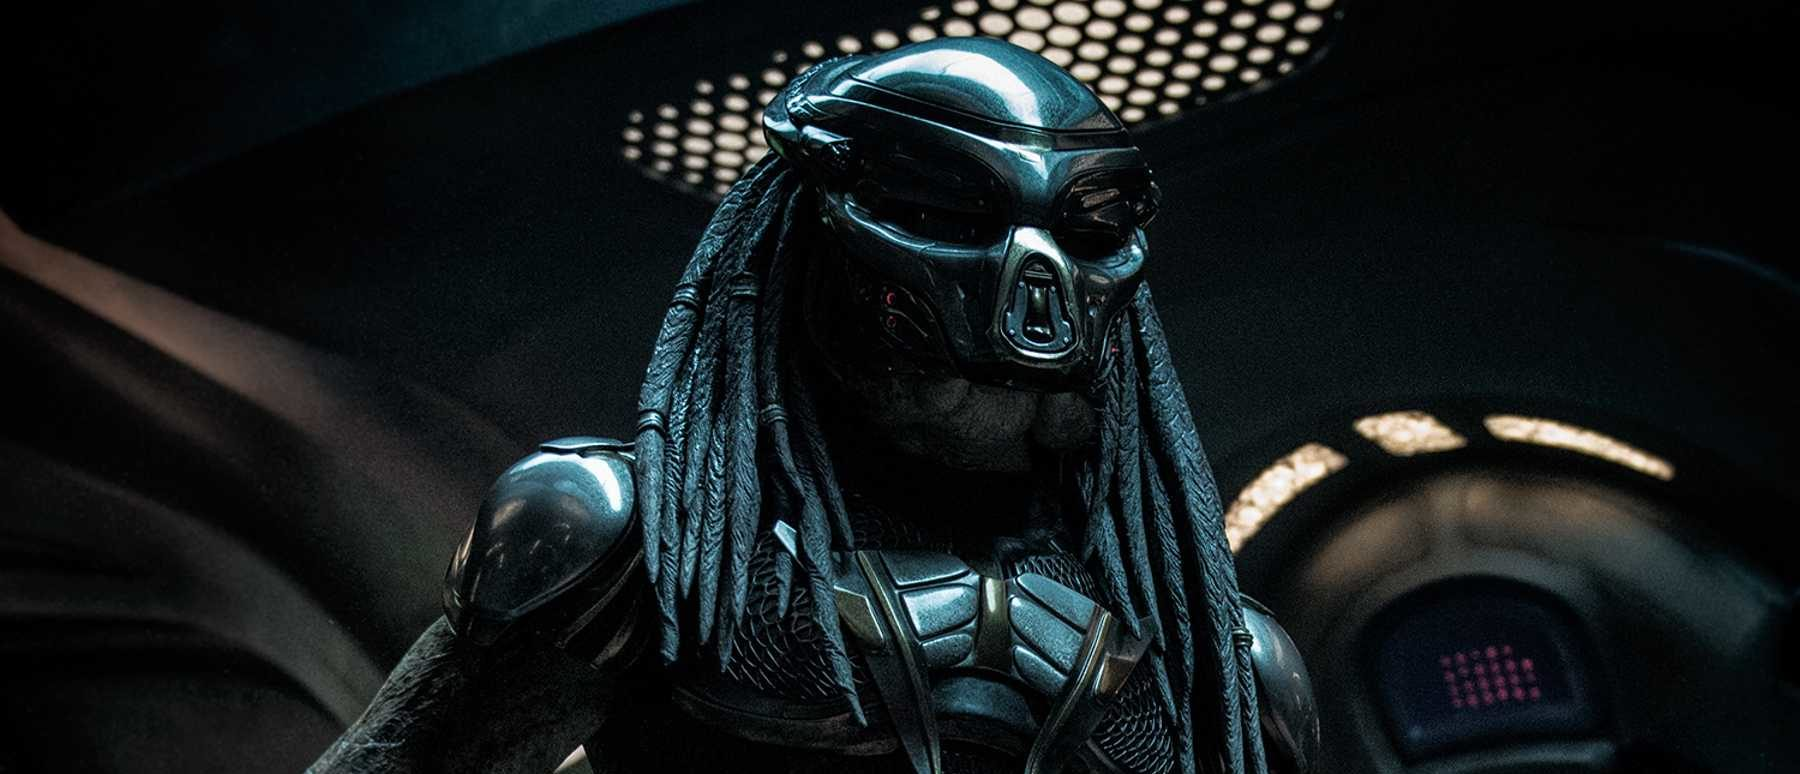 The Predator franchise is in need of a reboot